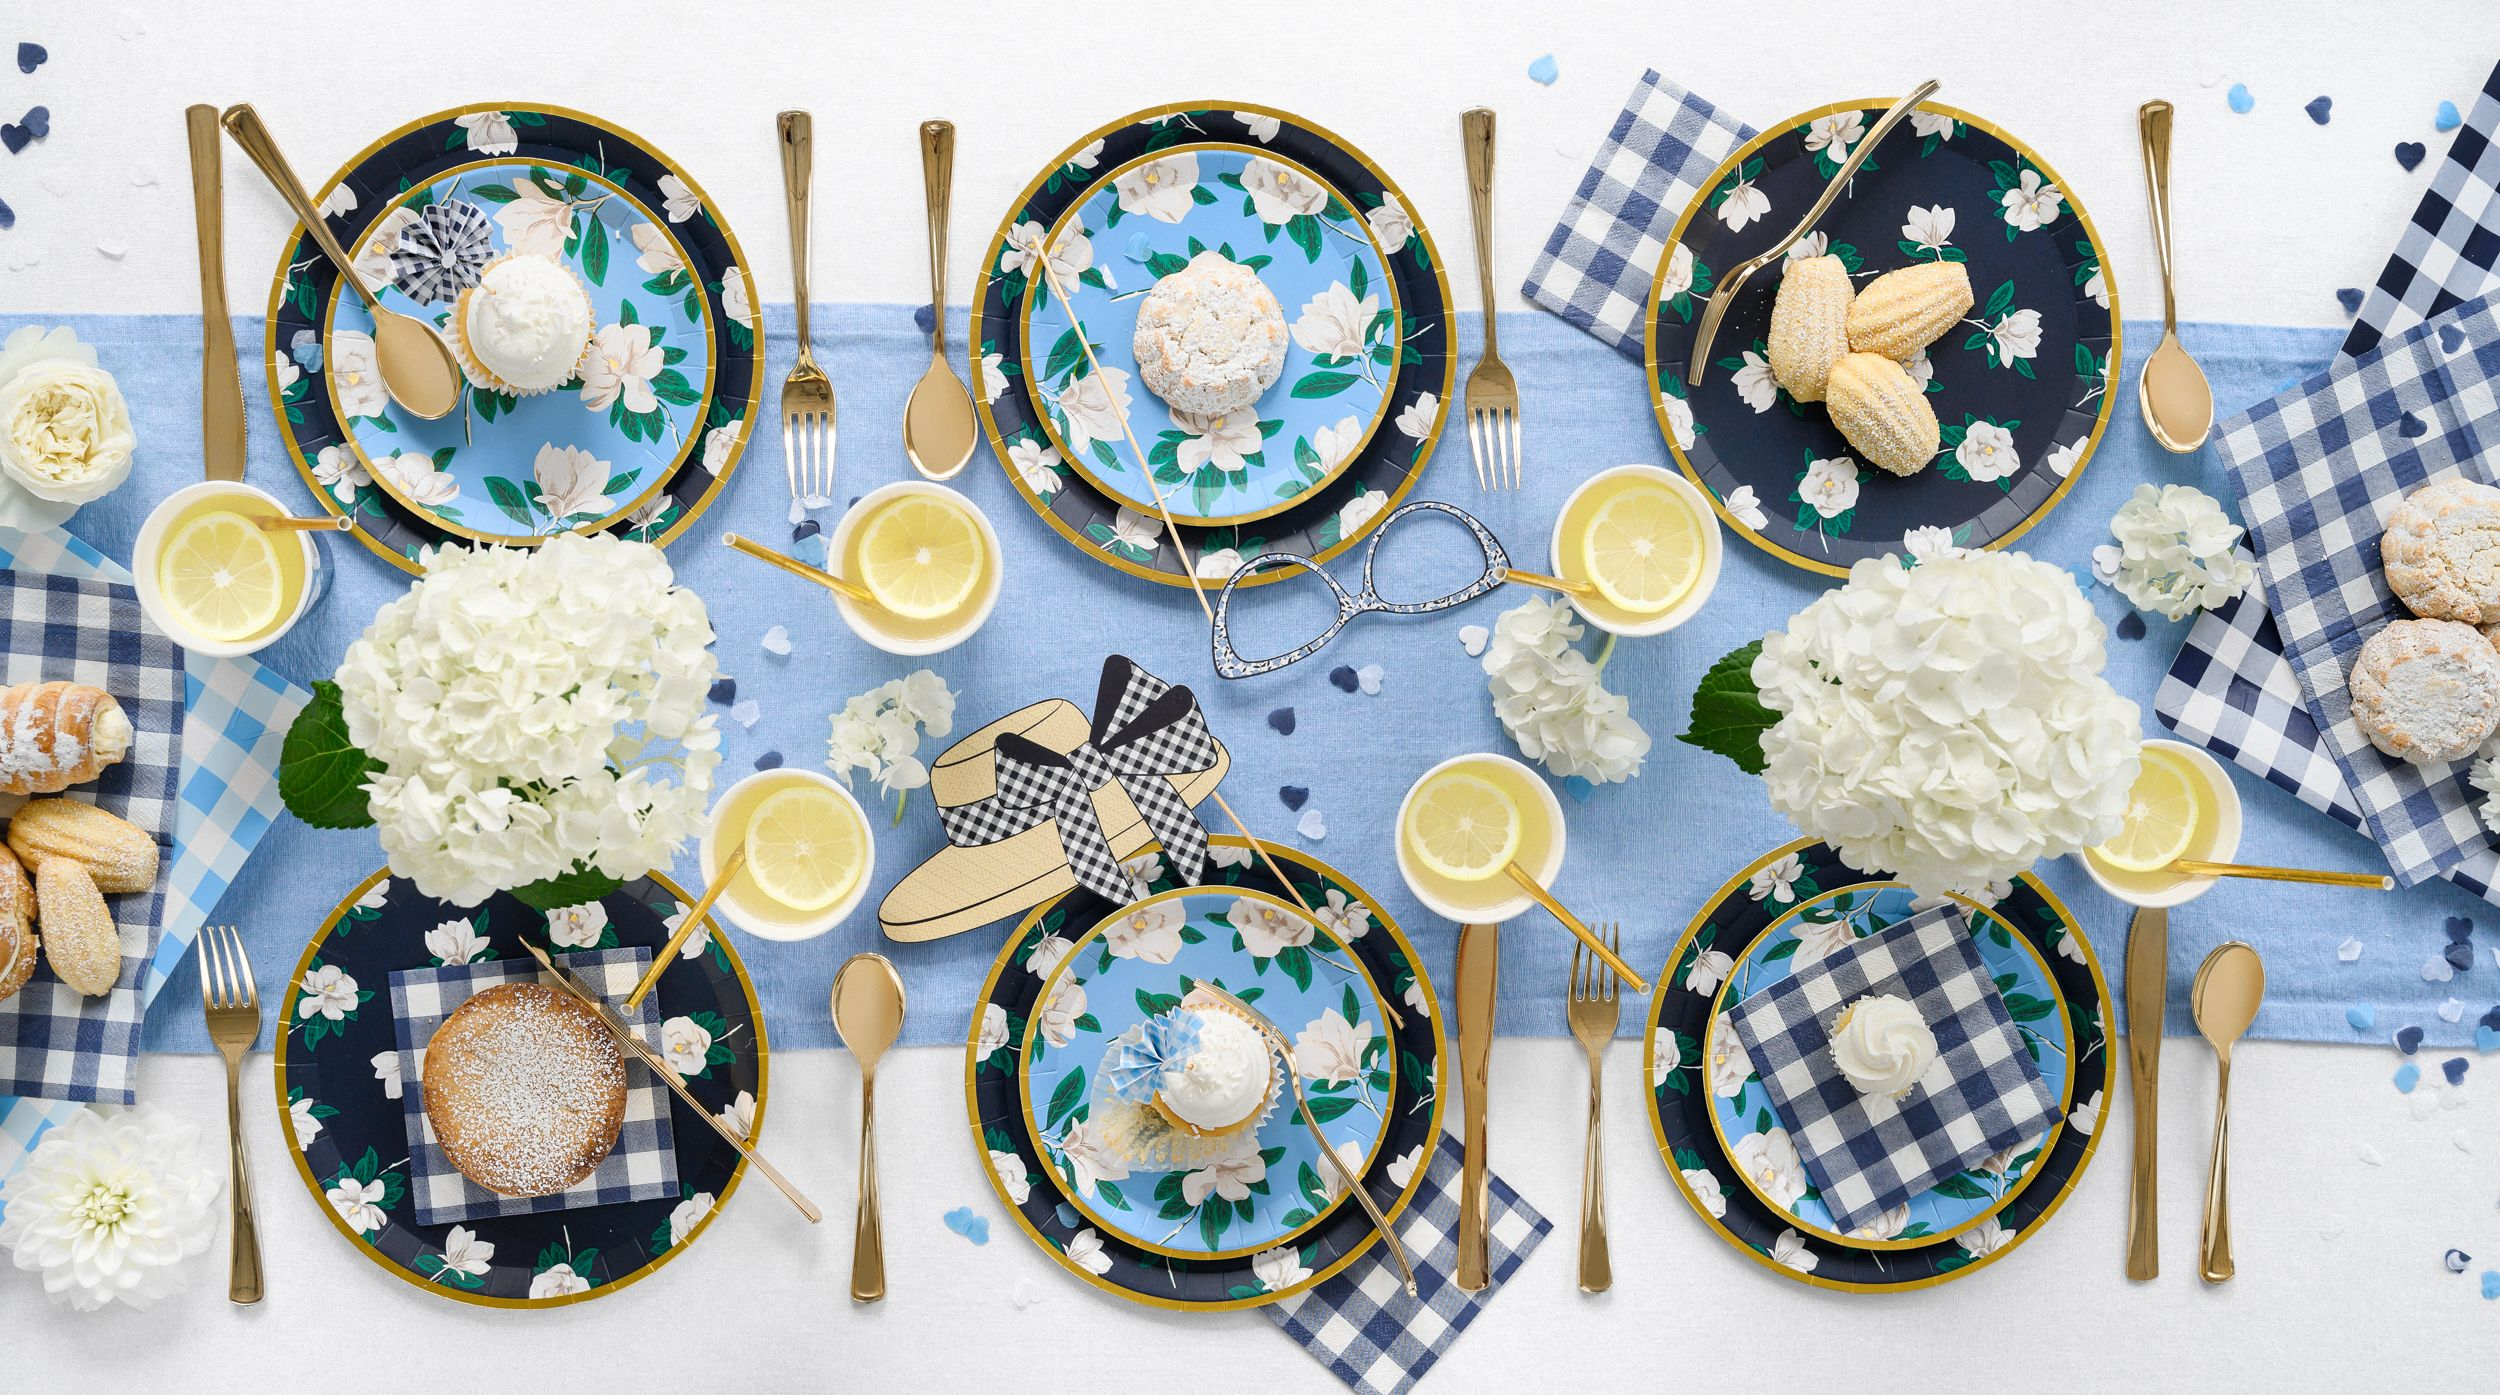 Draper James Just Launched Perfectly Preppy Party Decor